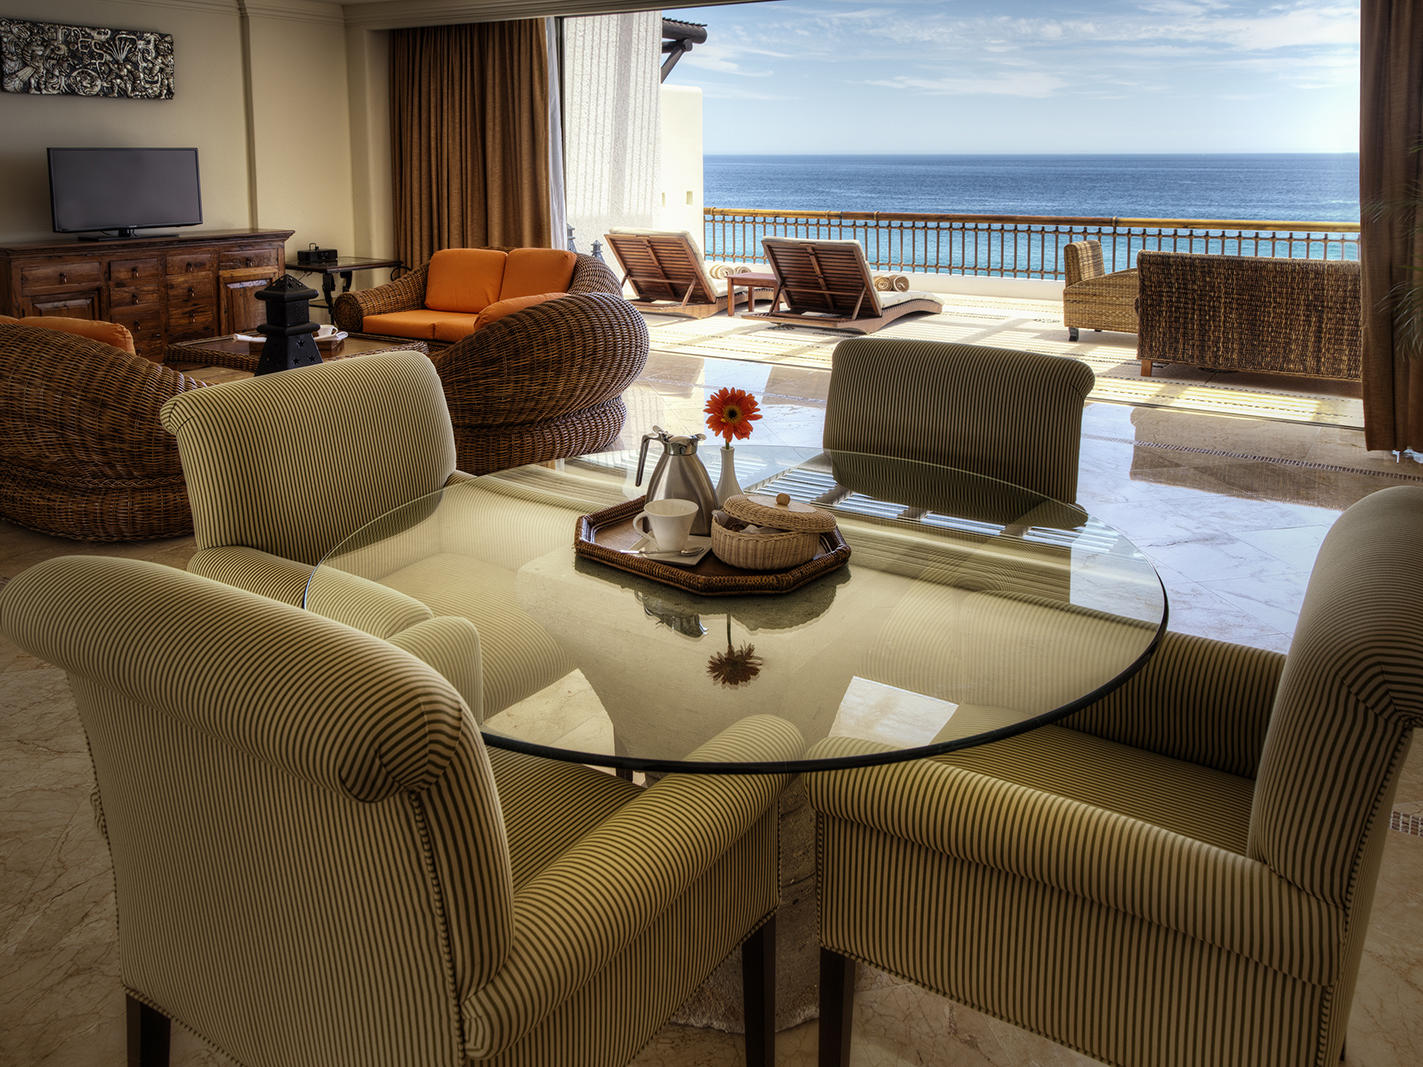 A circular table with chairs - Marquis Los Cabos